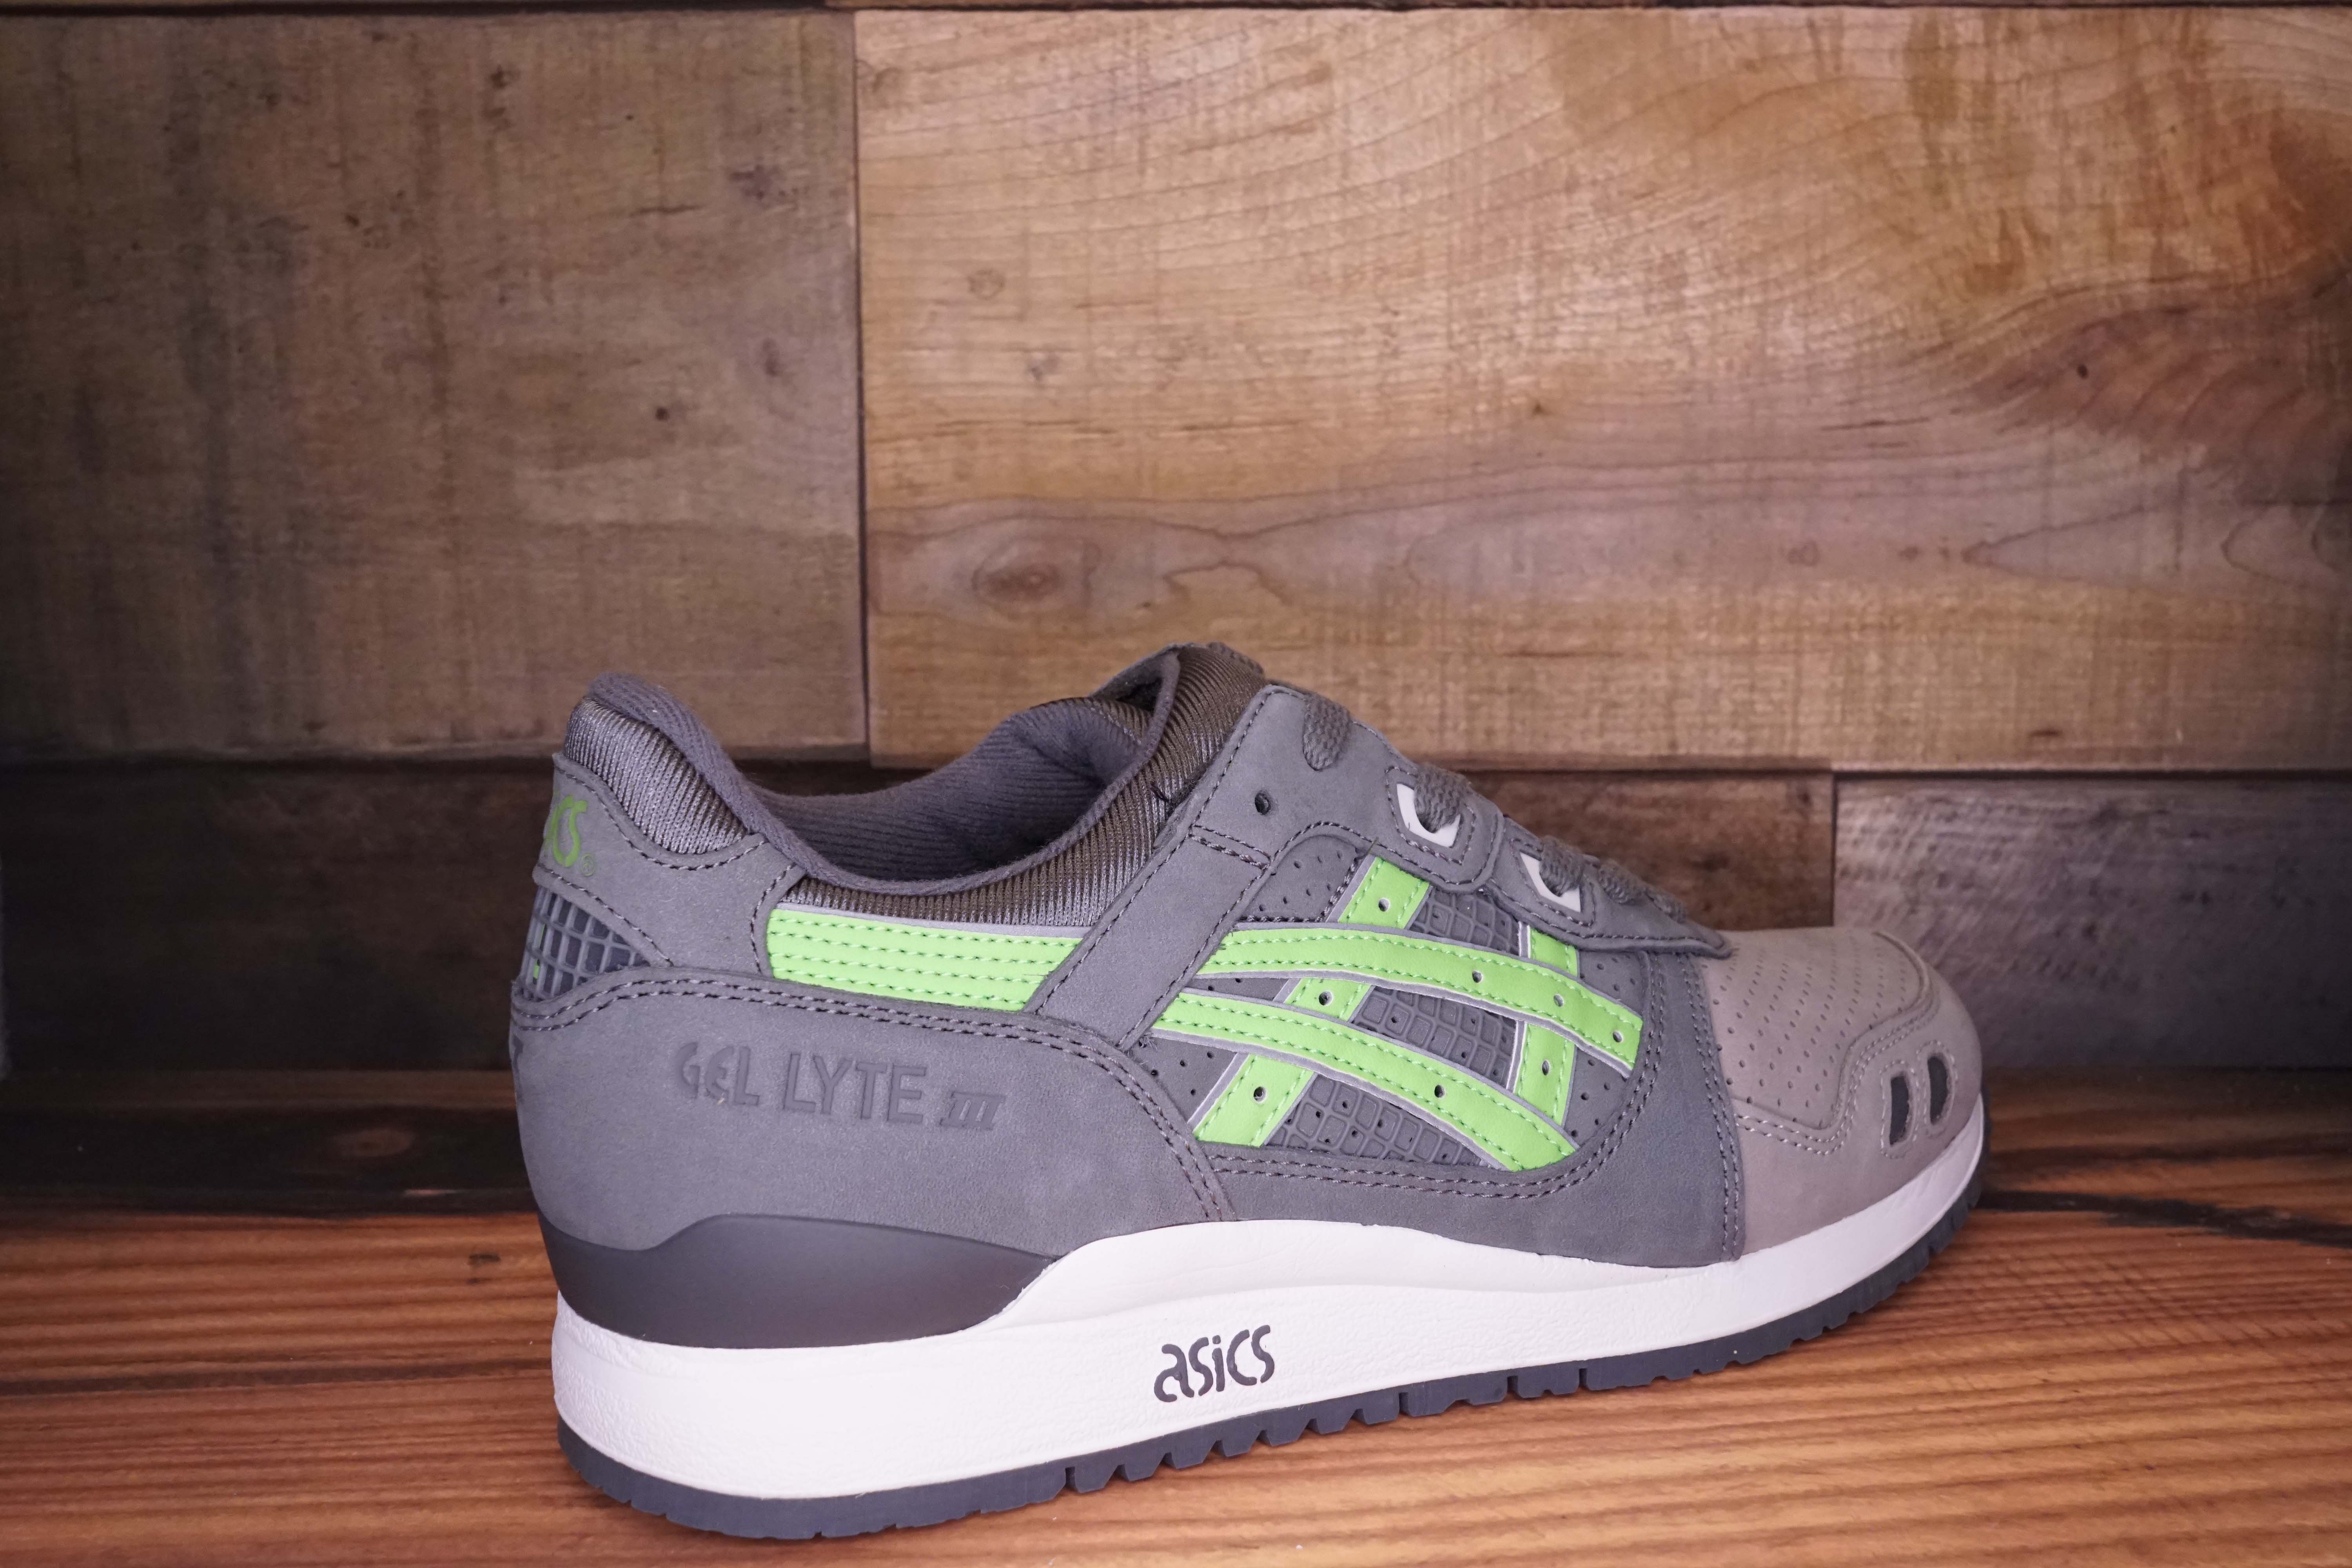 Asics-Gel-Lyte-3-SUPER-GREEN-2016-Size-10.5-New-with-Original-Box_2510C.jpg